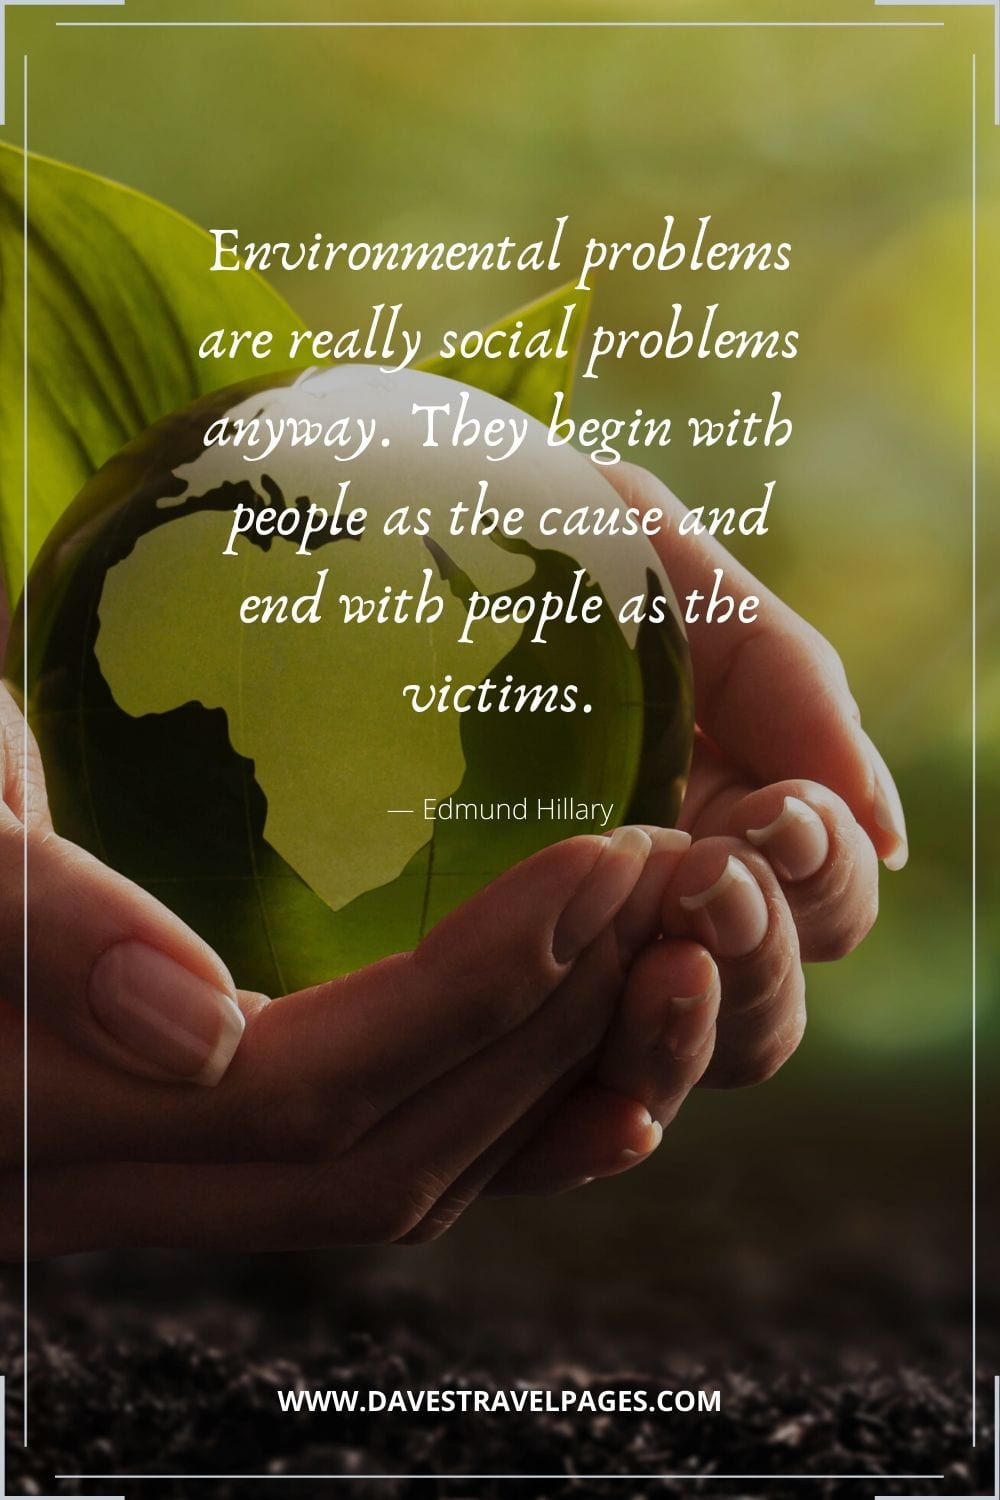 """Environmental problems are really social problems anyway. They begin with people as the cause and end with people as the victims"" - Edmund Hillary"